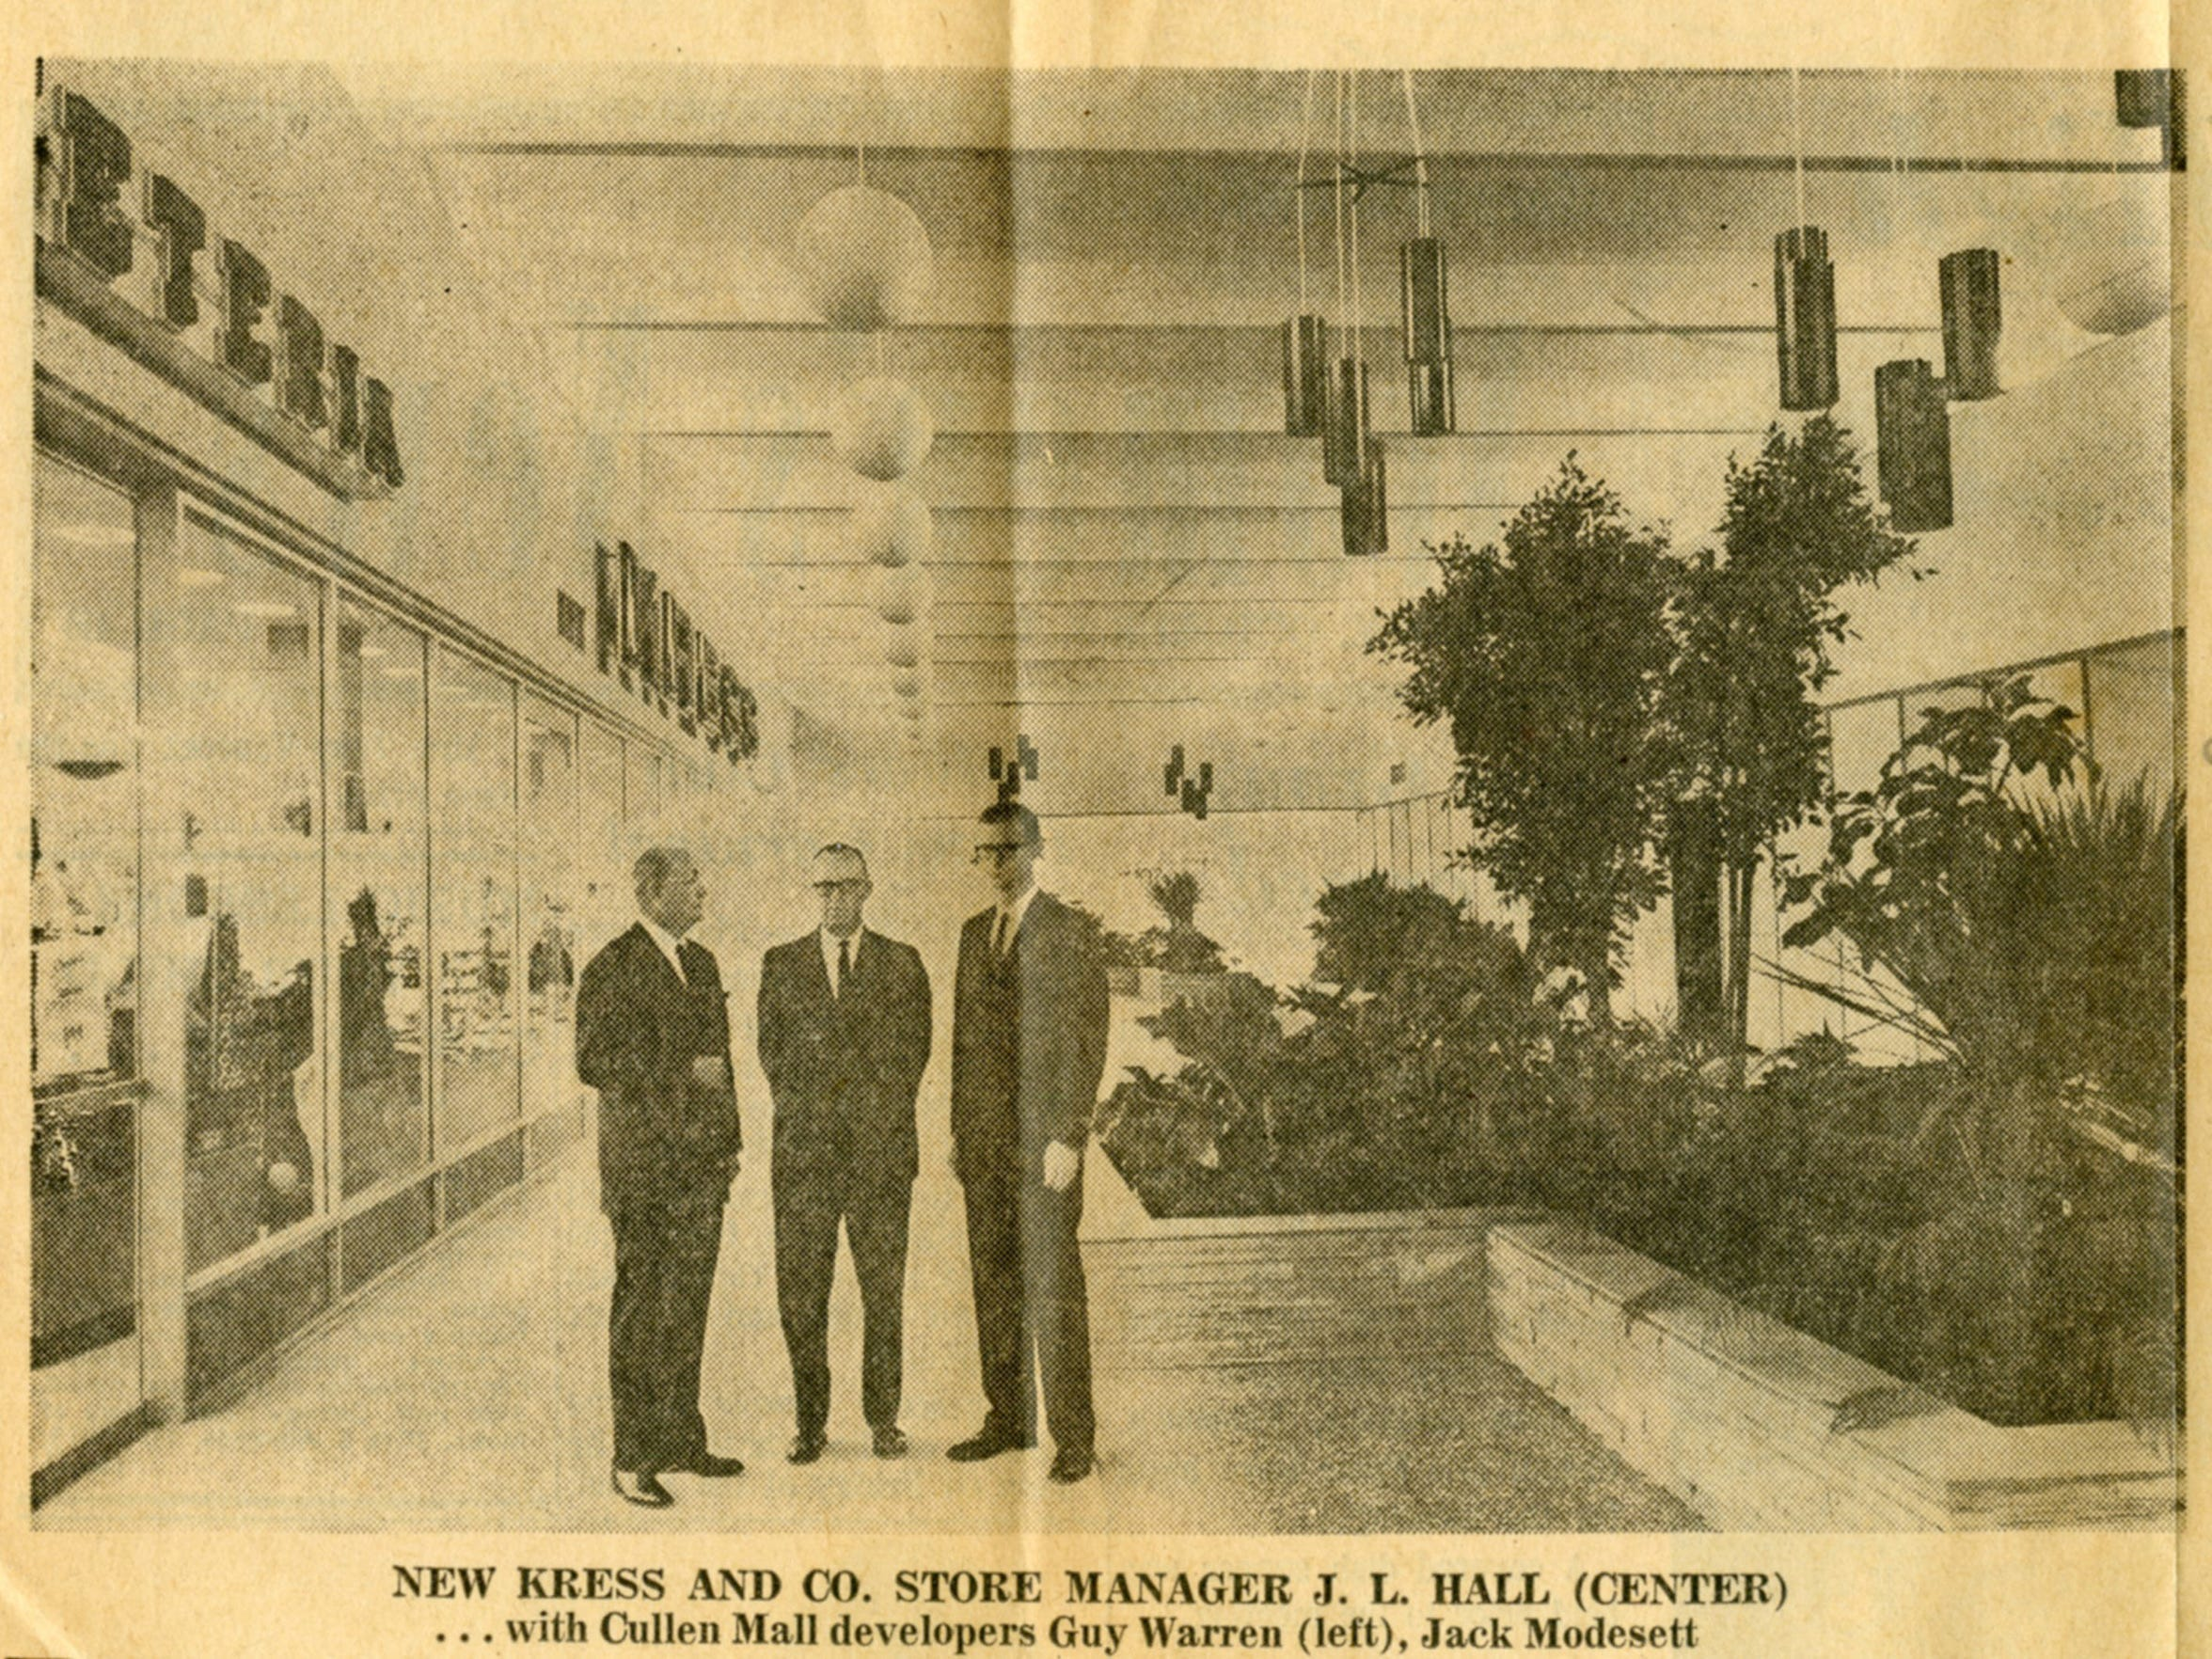 Kress and Co. store manager J.L. Hall (center) with